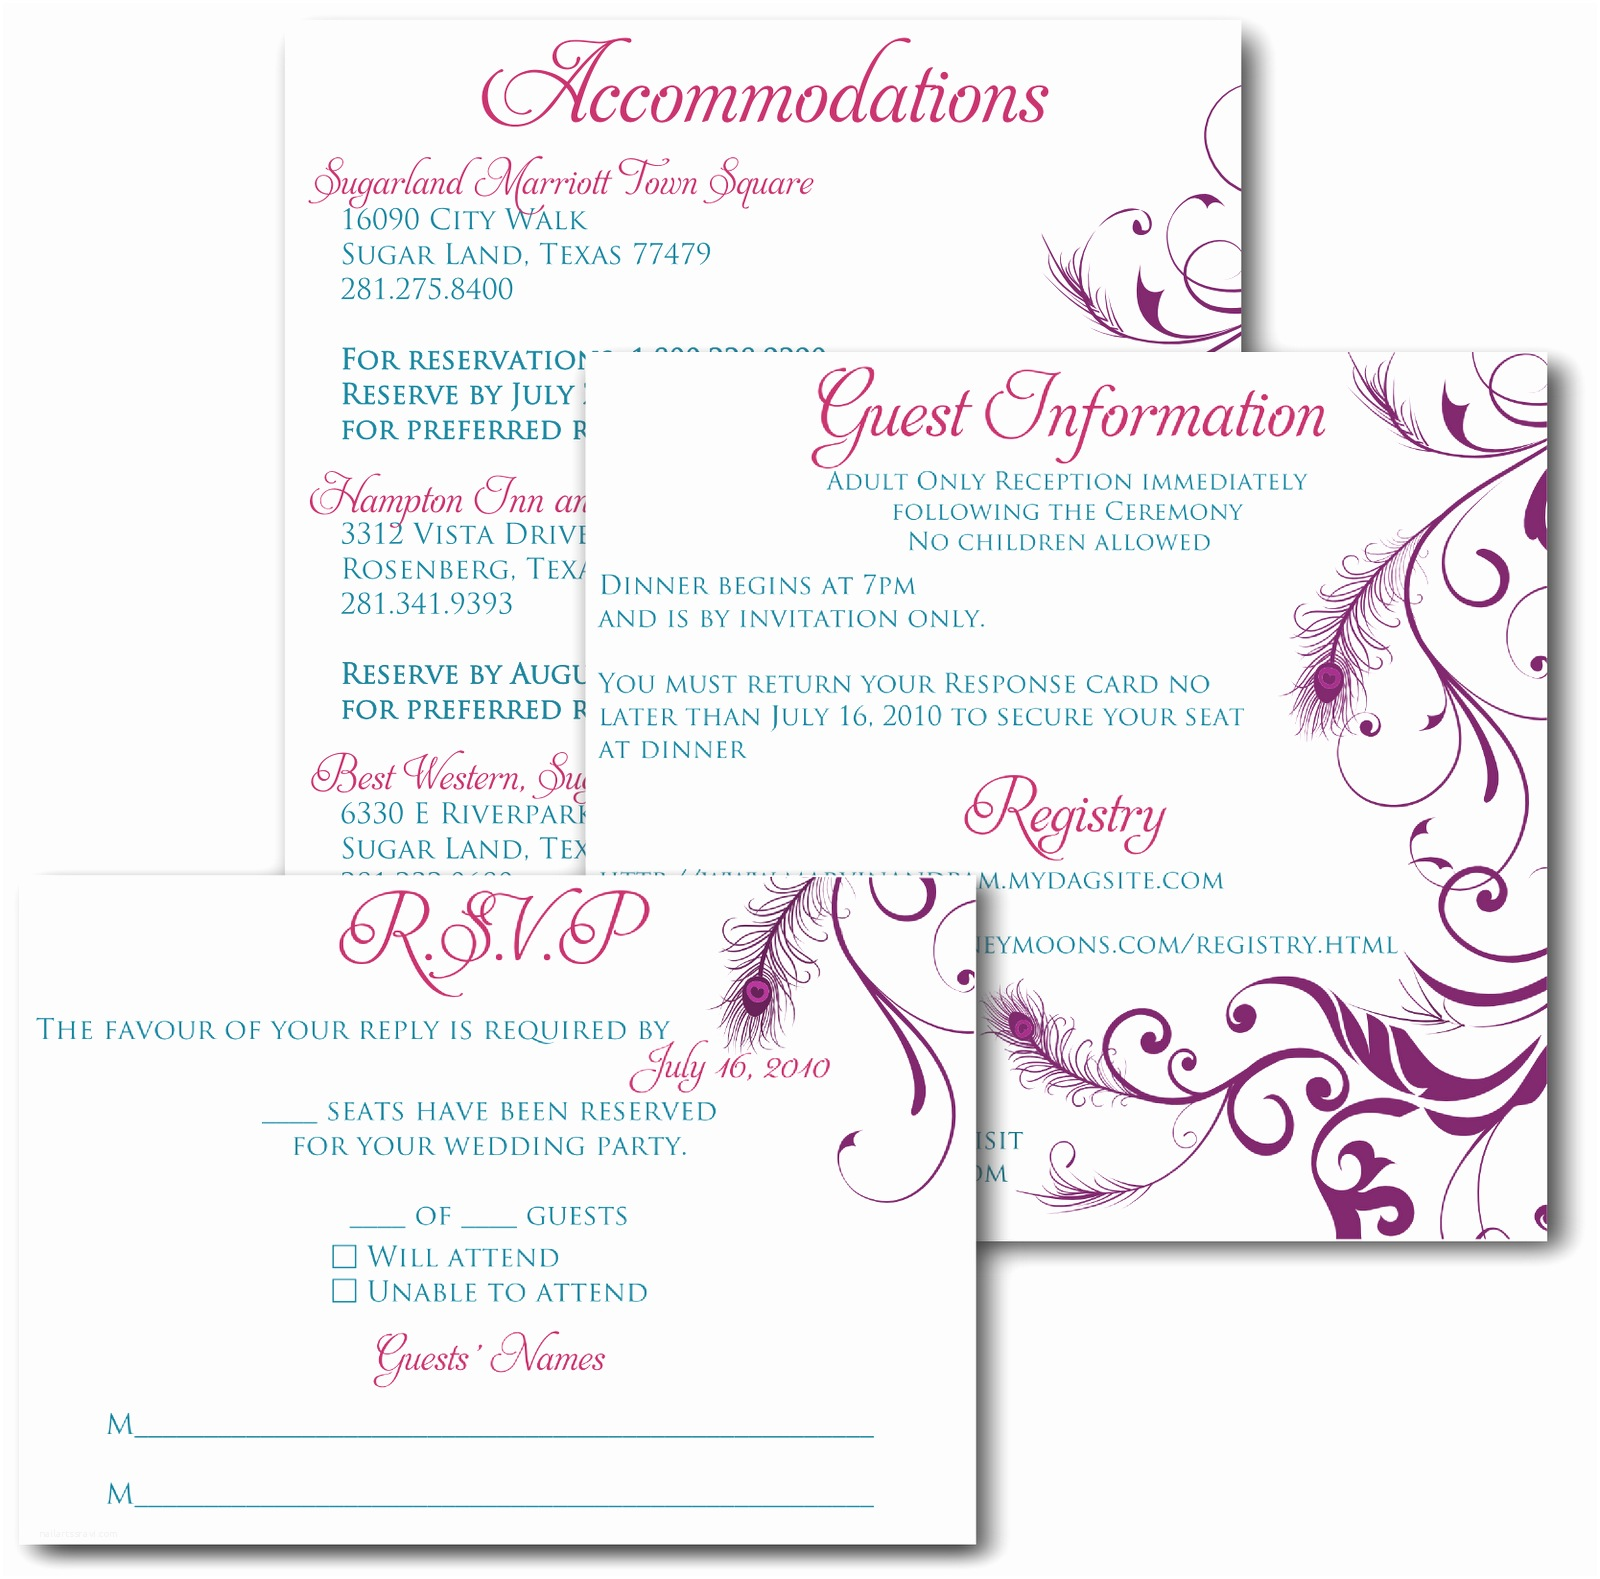 Wedding Invitations with Photo Insert Wedding Invitations and Inserts Google Search